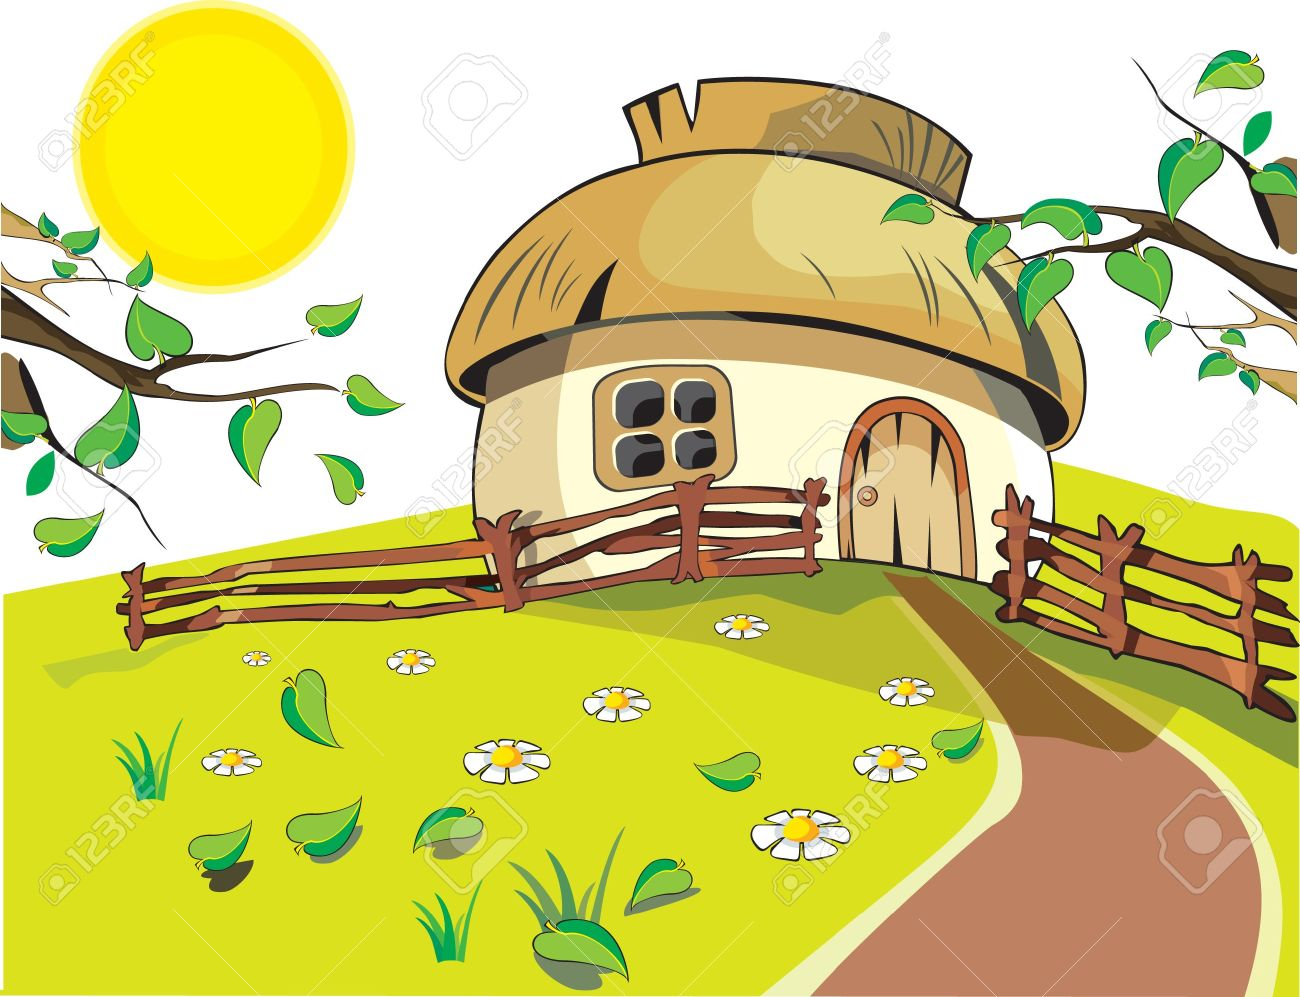 Small House Under With Sun, Flowers, Leaf And Fence On The White.